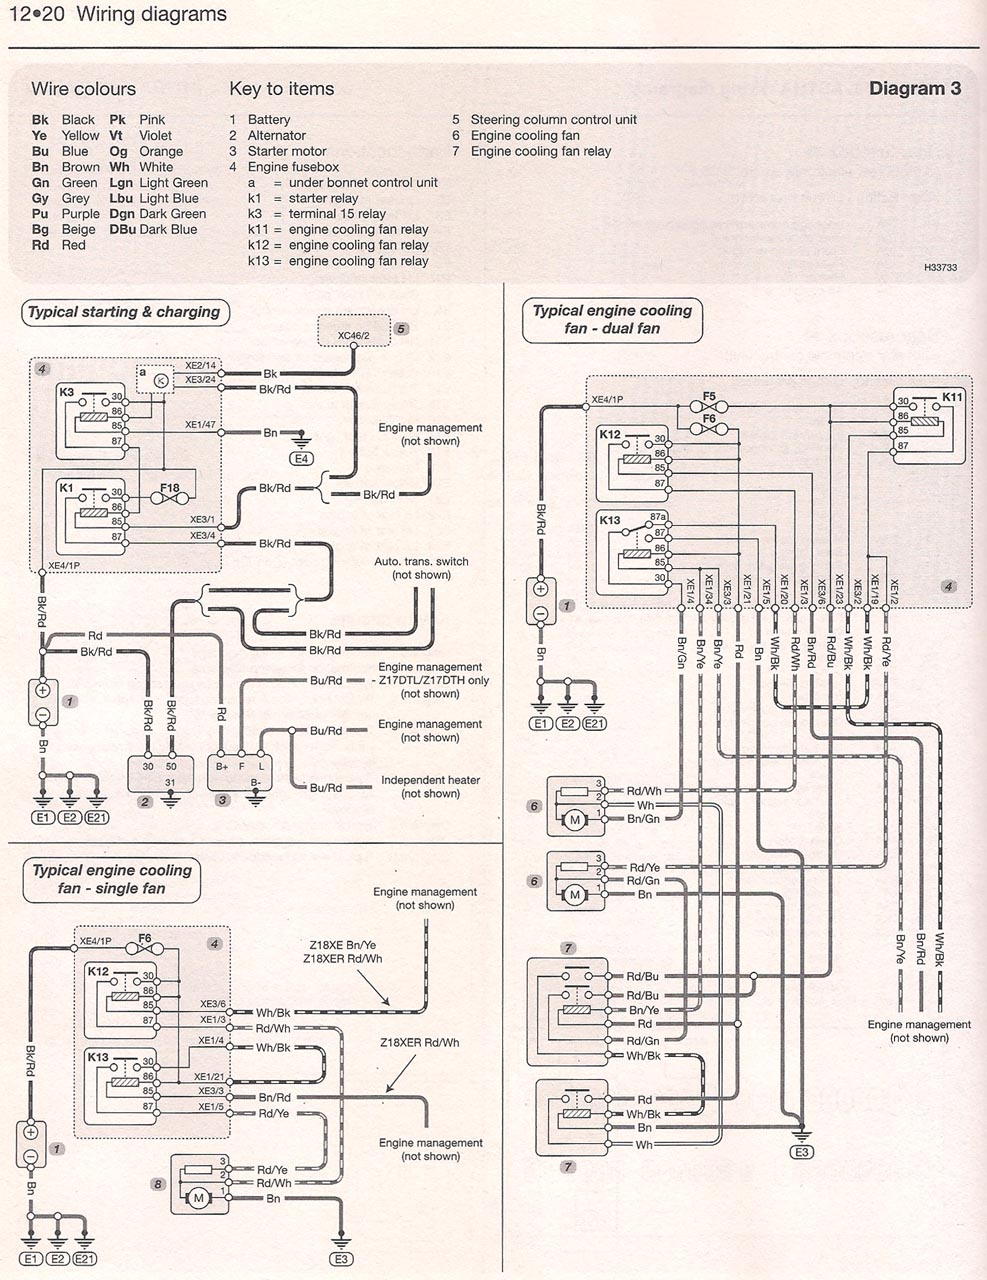 ads c2000 crossover wiring diagram wiring diagram schematicsastra mk6 fuse  box wiring library ads c2000 crossover